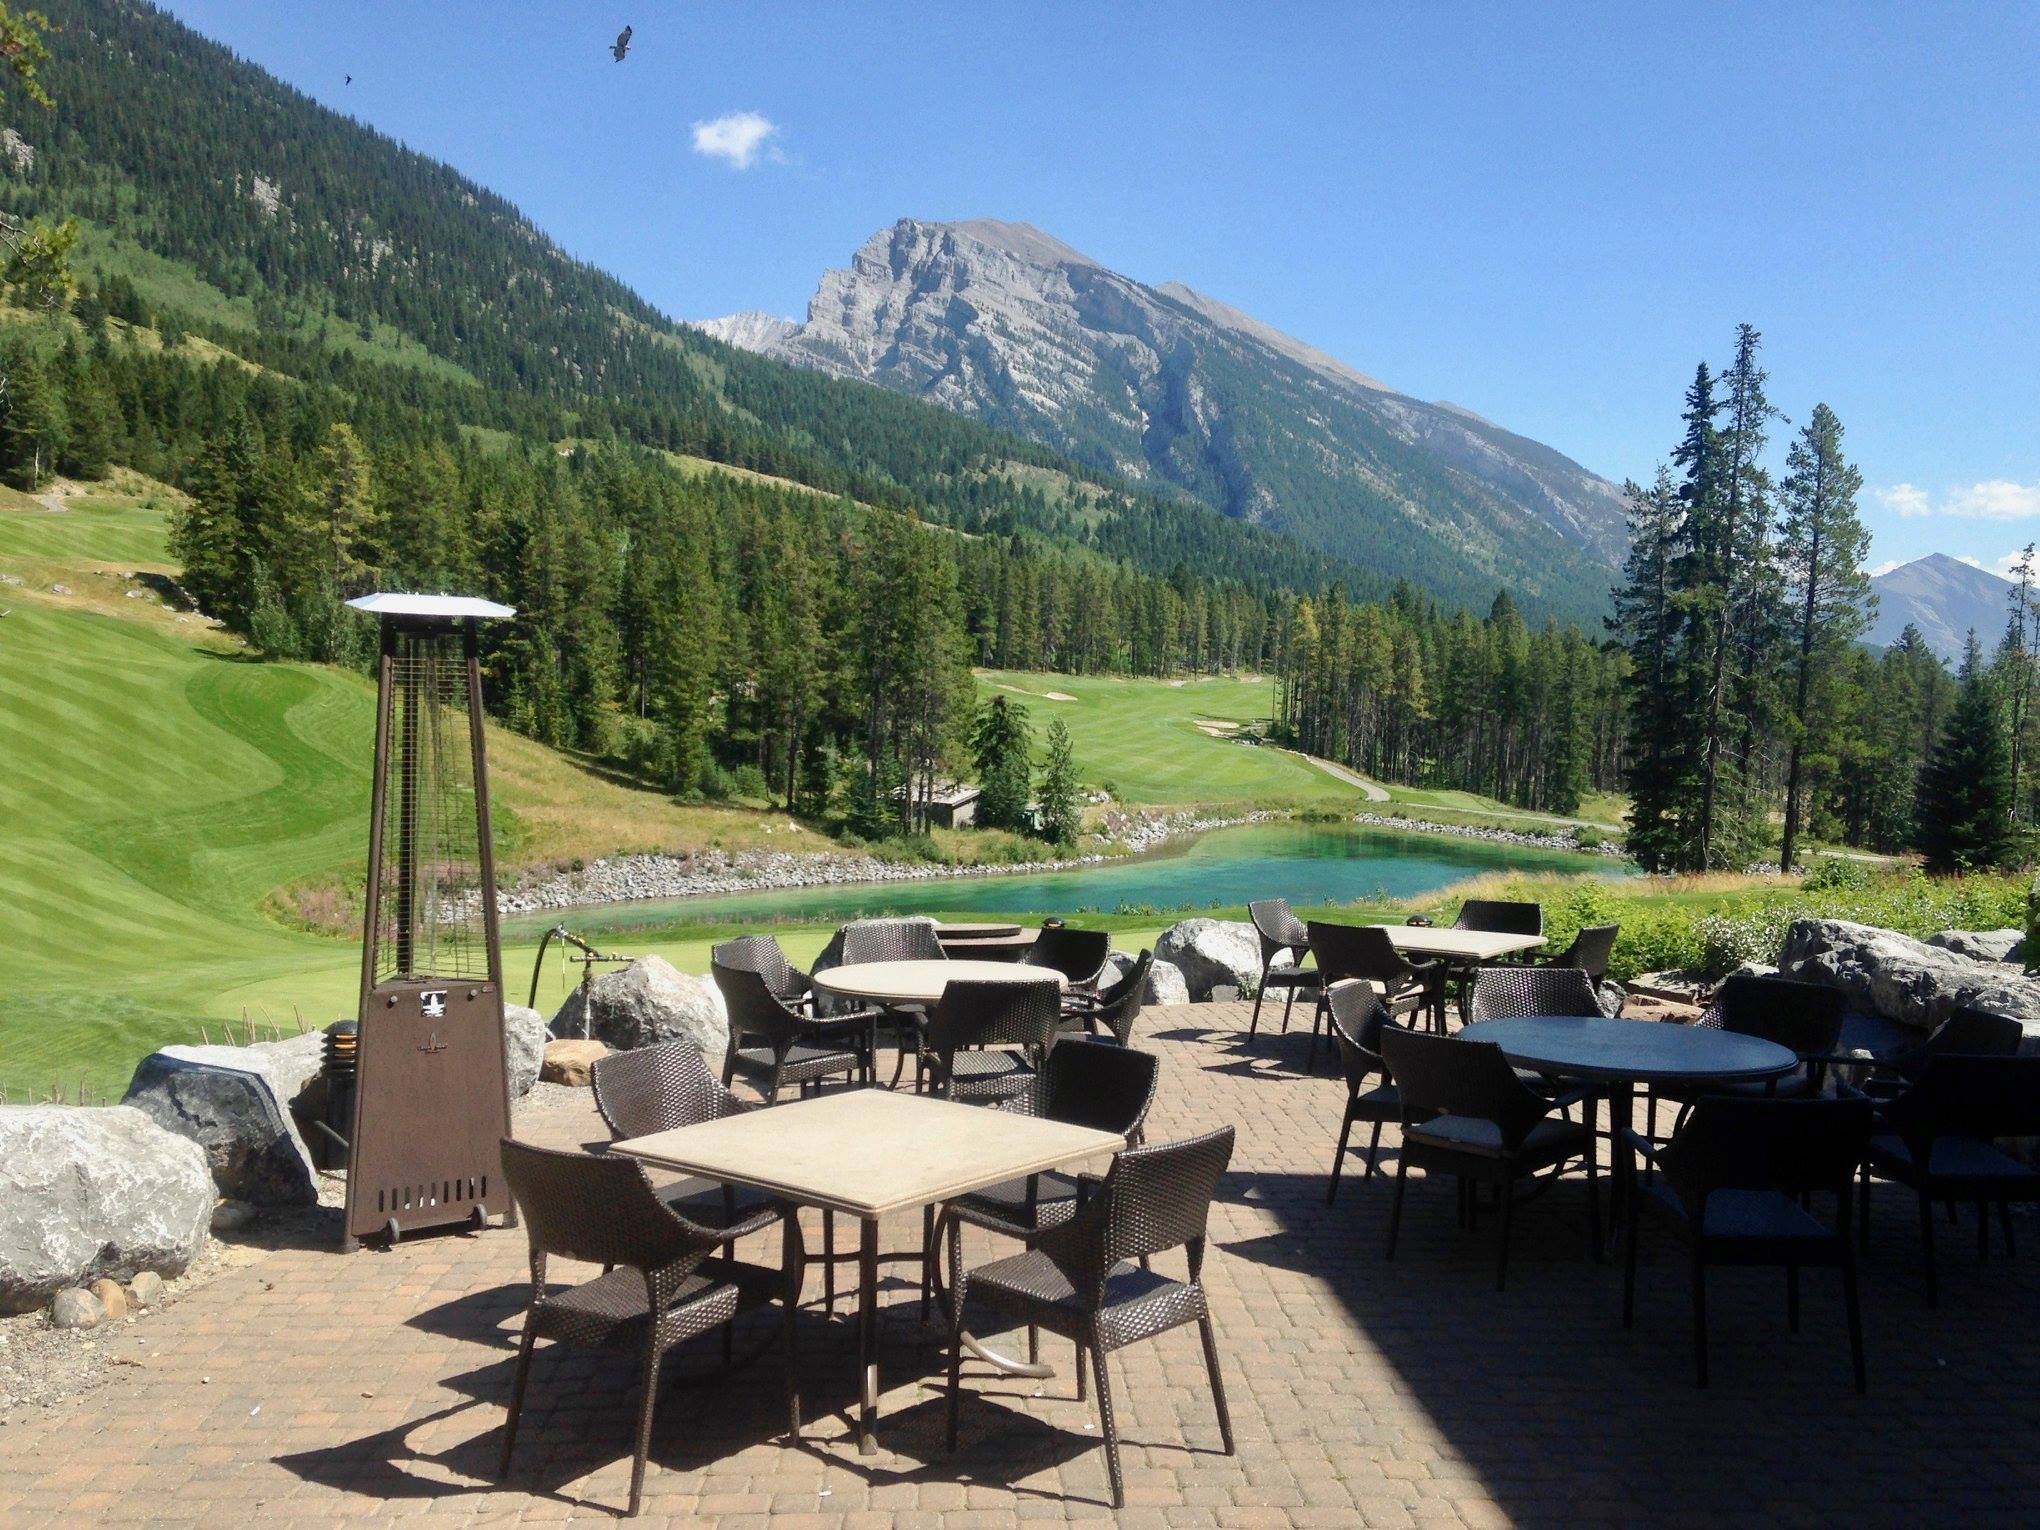 Patio paradise: You don't need to be a golfer to enjoy Silvertip Resort's spectacular views. Dine at Rustica and the scenery is the perfect accompaniment to your meal.